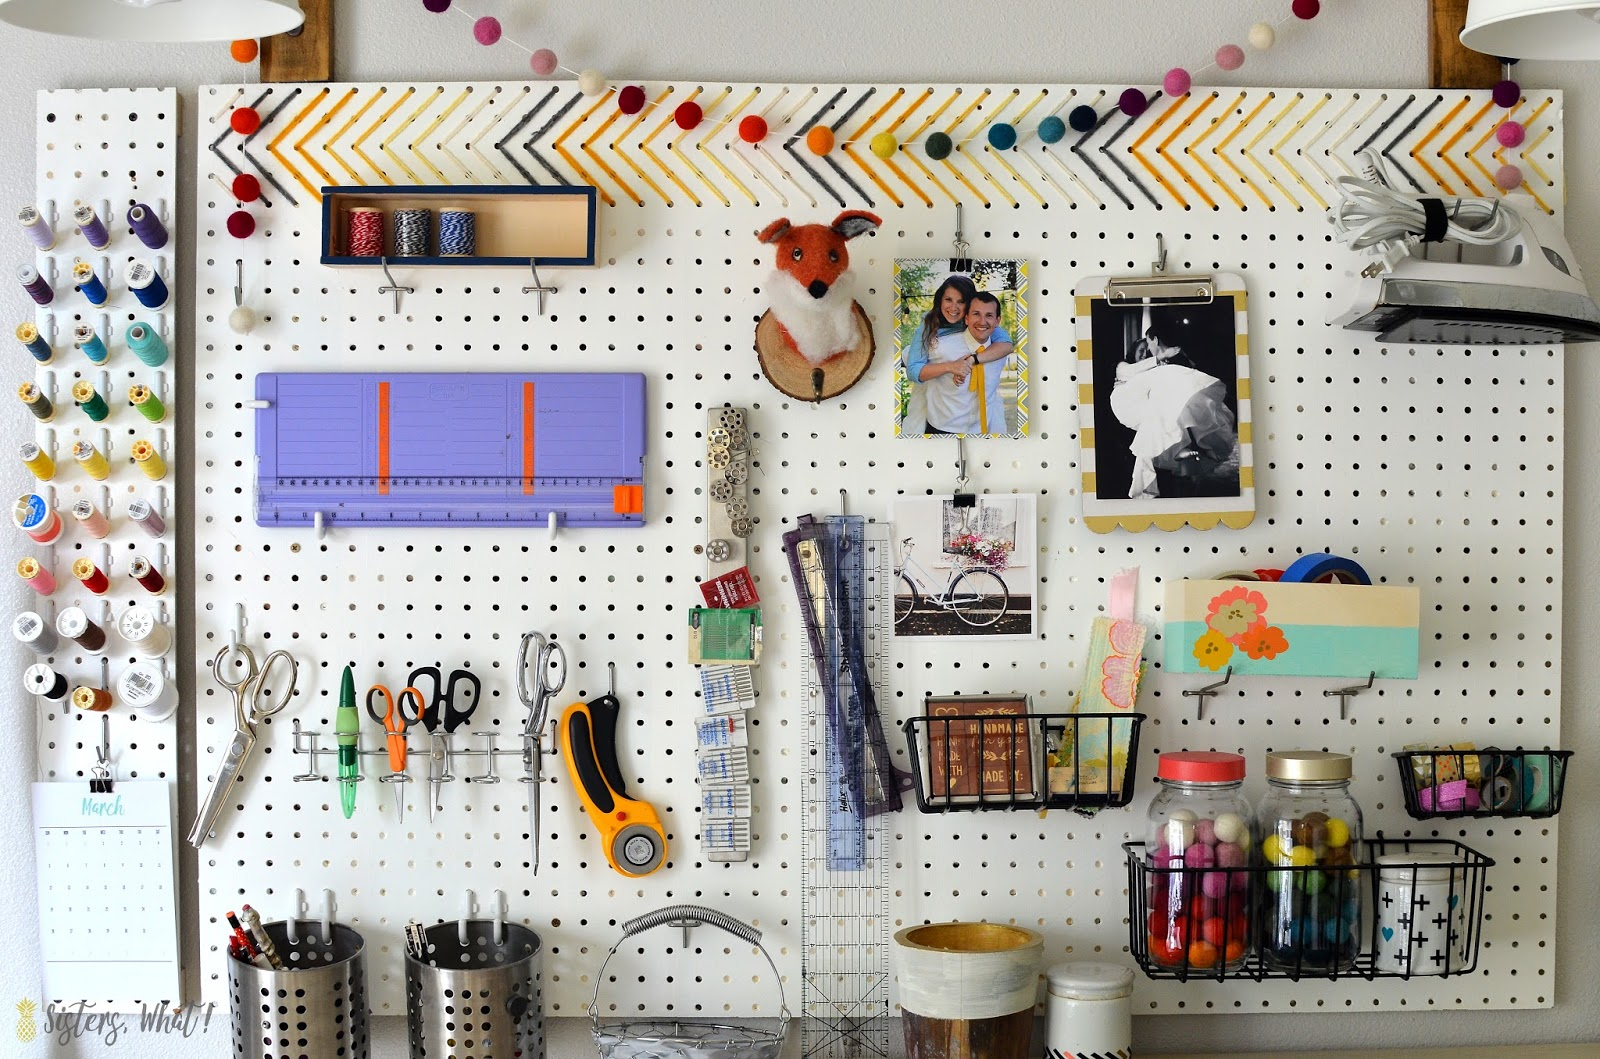 How to use a pegboard in a craft space in an organized crafty way